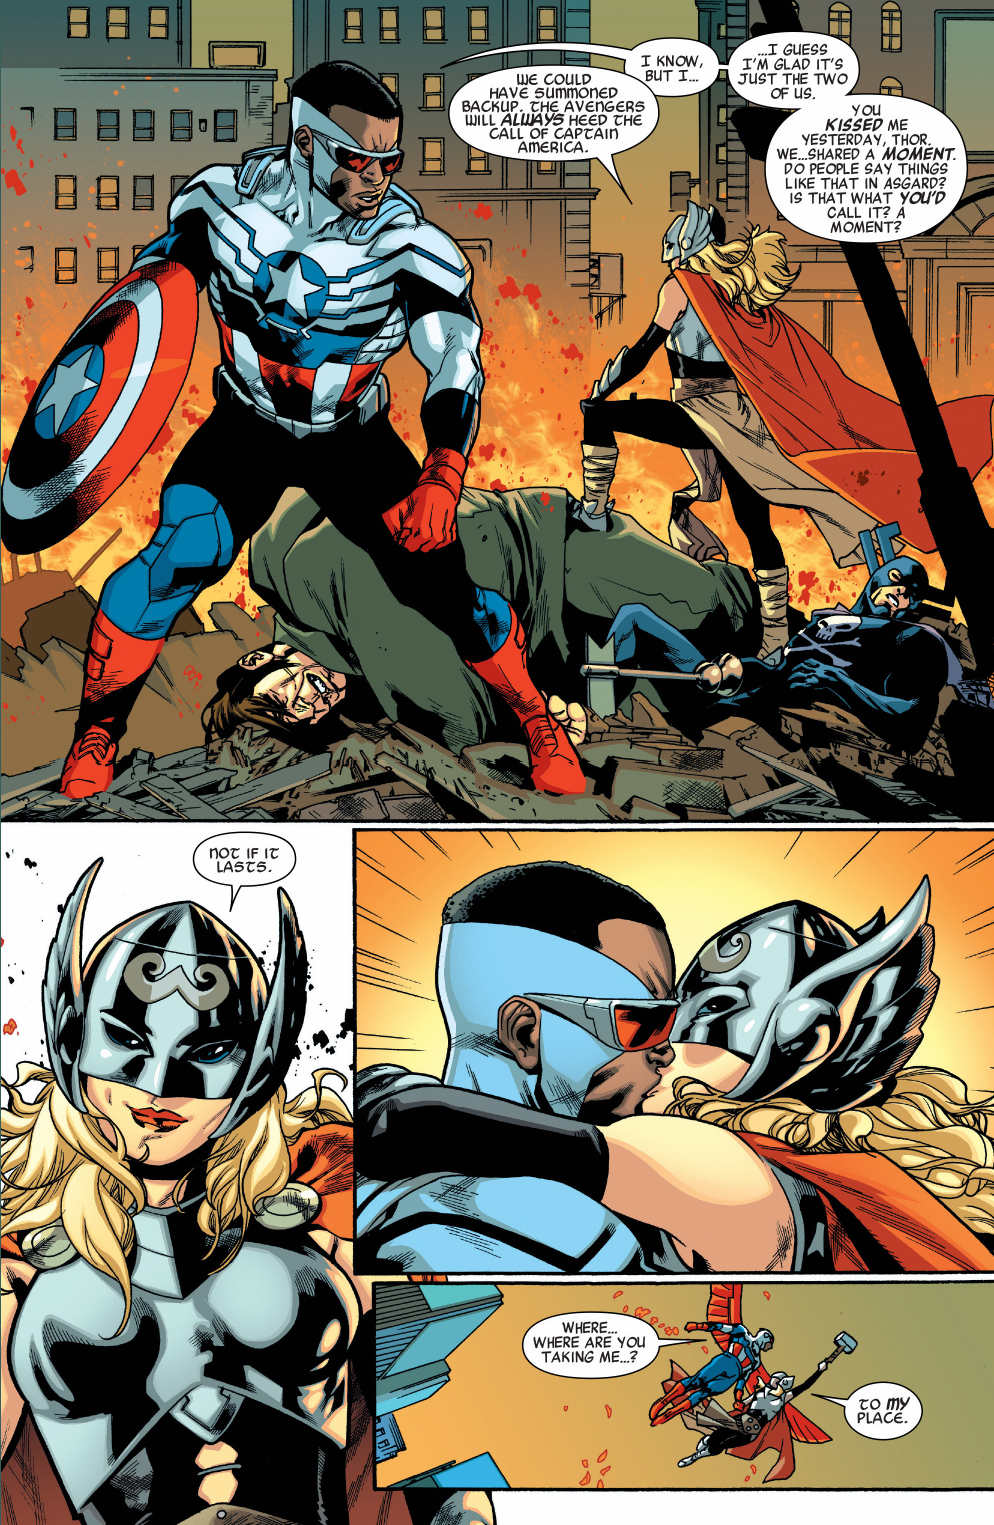 miss marvel's fanfic ships captain america and thor | comicnewbies